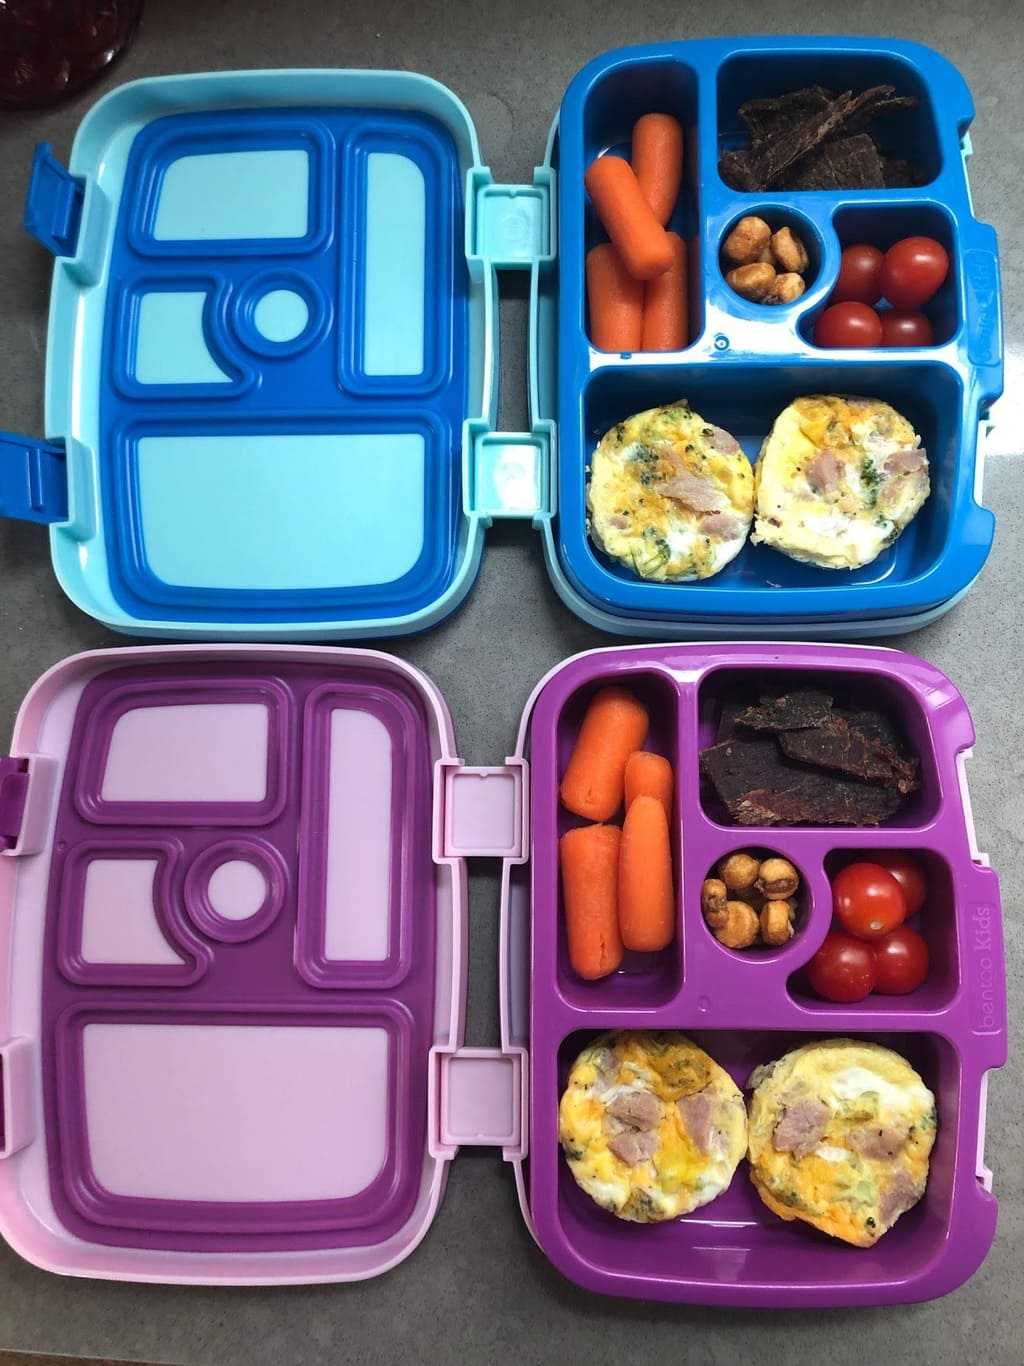 a blue and purple lunchbox with mini egg bites and other snacks